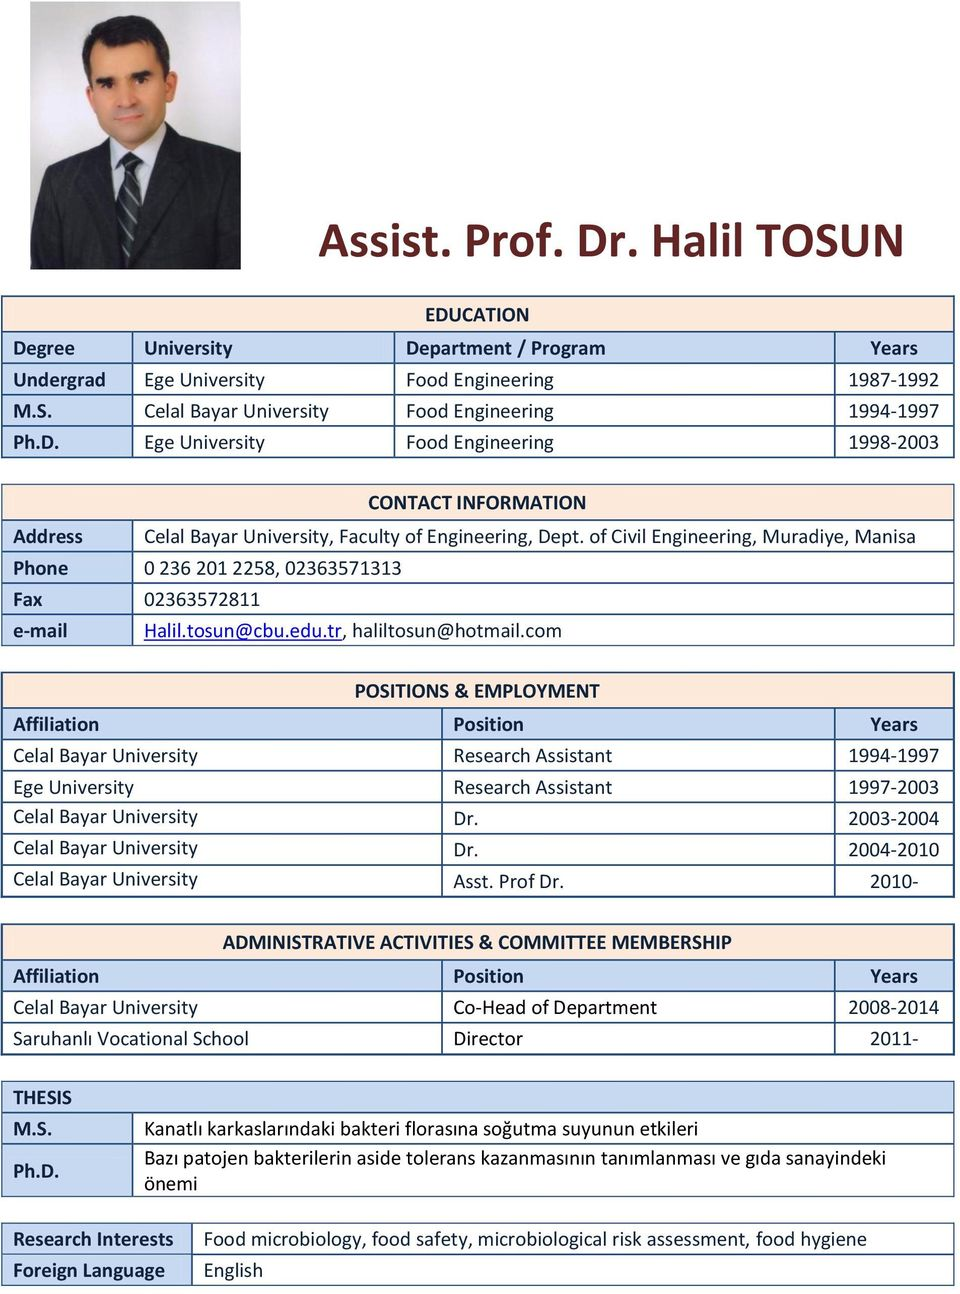 com POSITIONS & EMPLOYMENT Affiliation Position Years Celal Bayar University Research Assistant 199-1997 Ege University Research Assistant 1997-00 Celal Bayar University Dr.